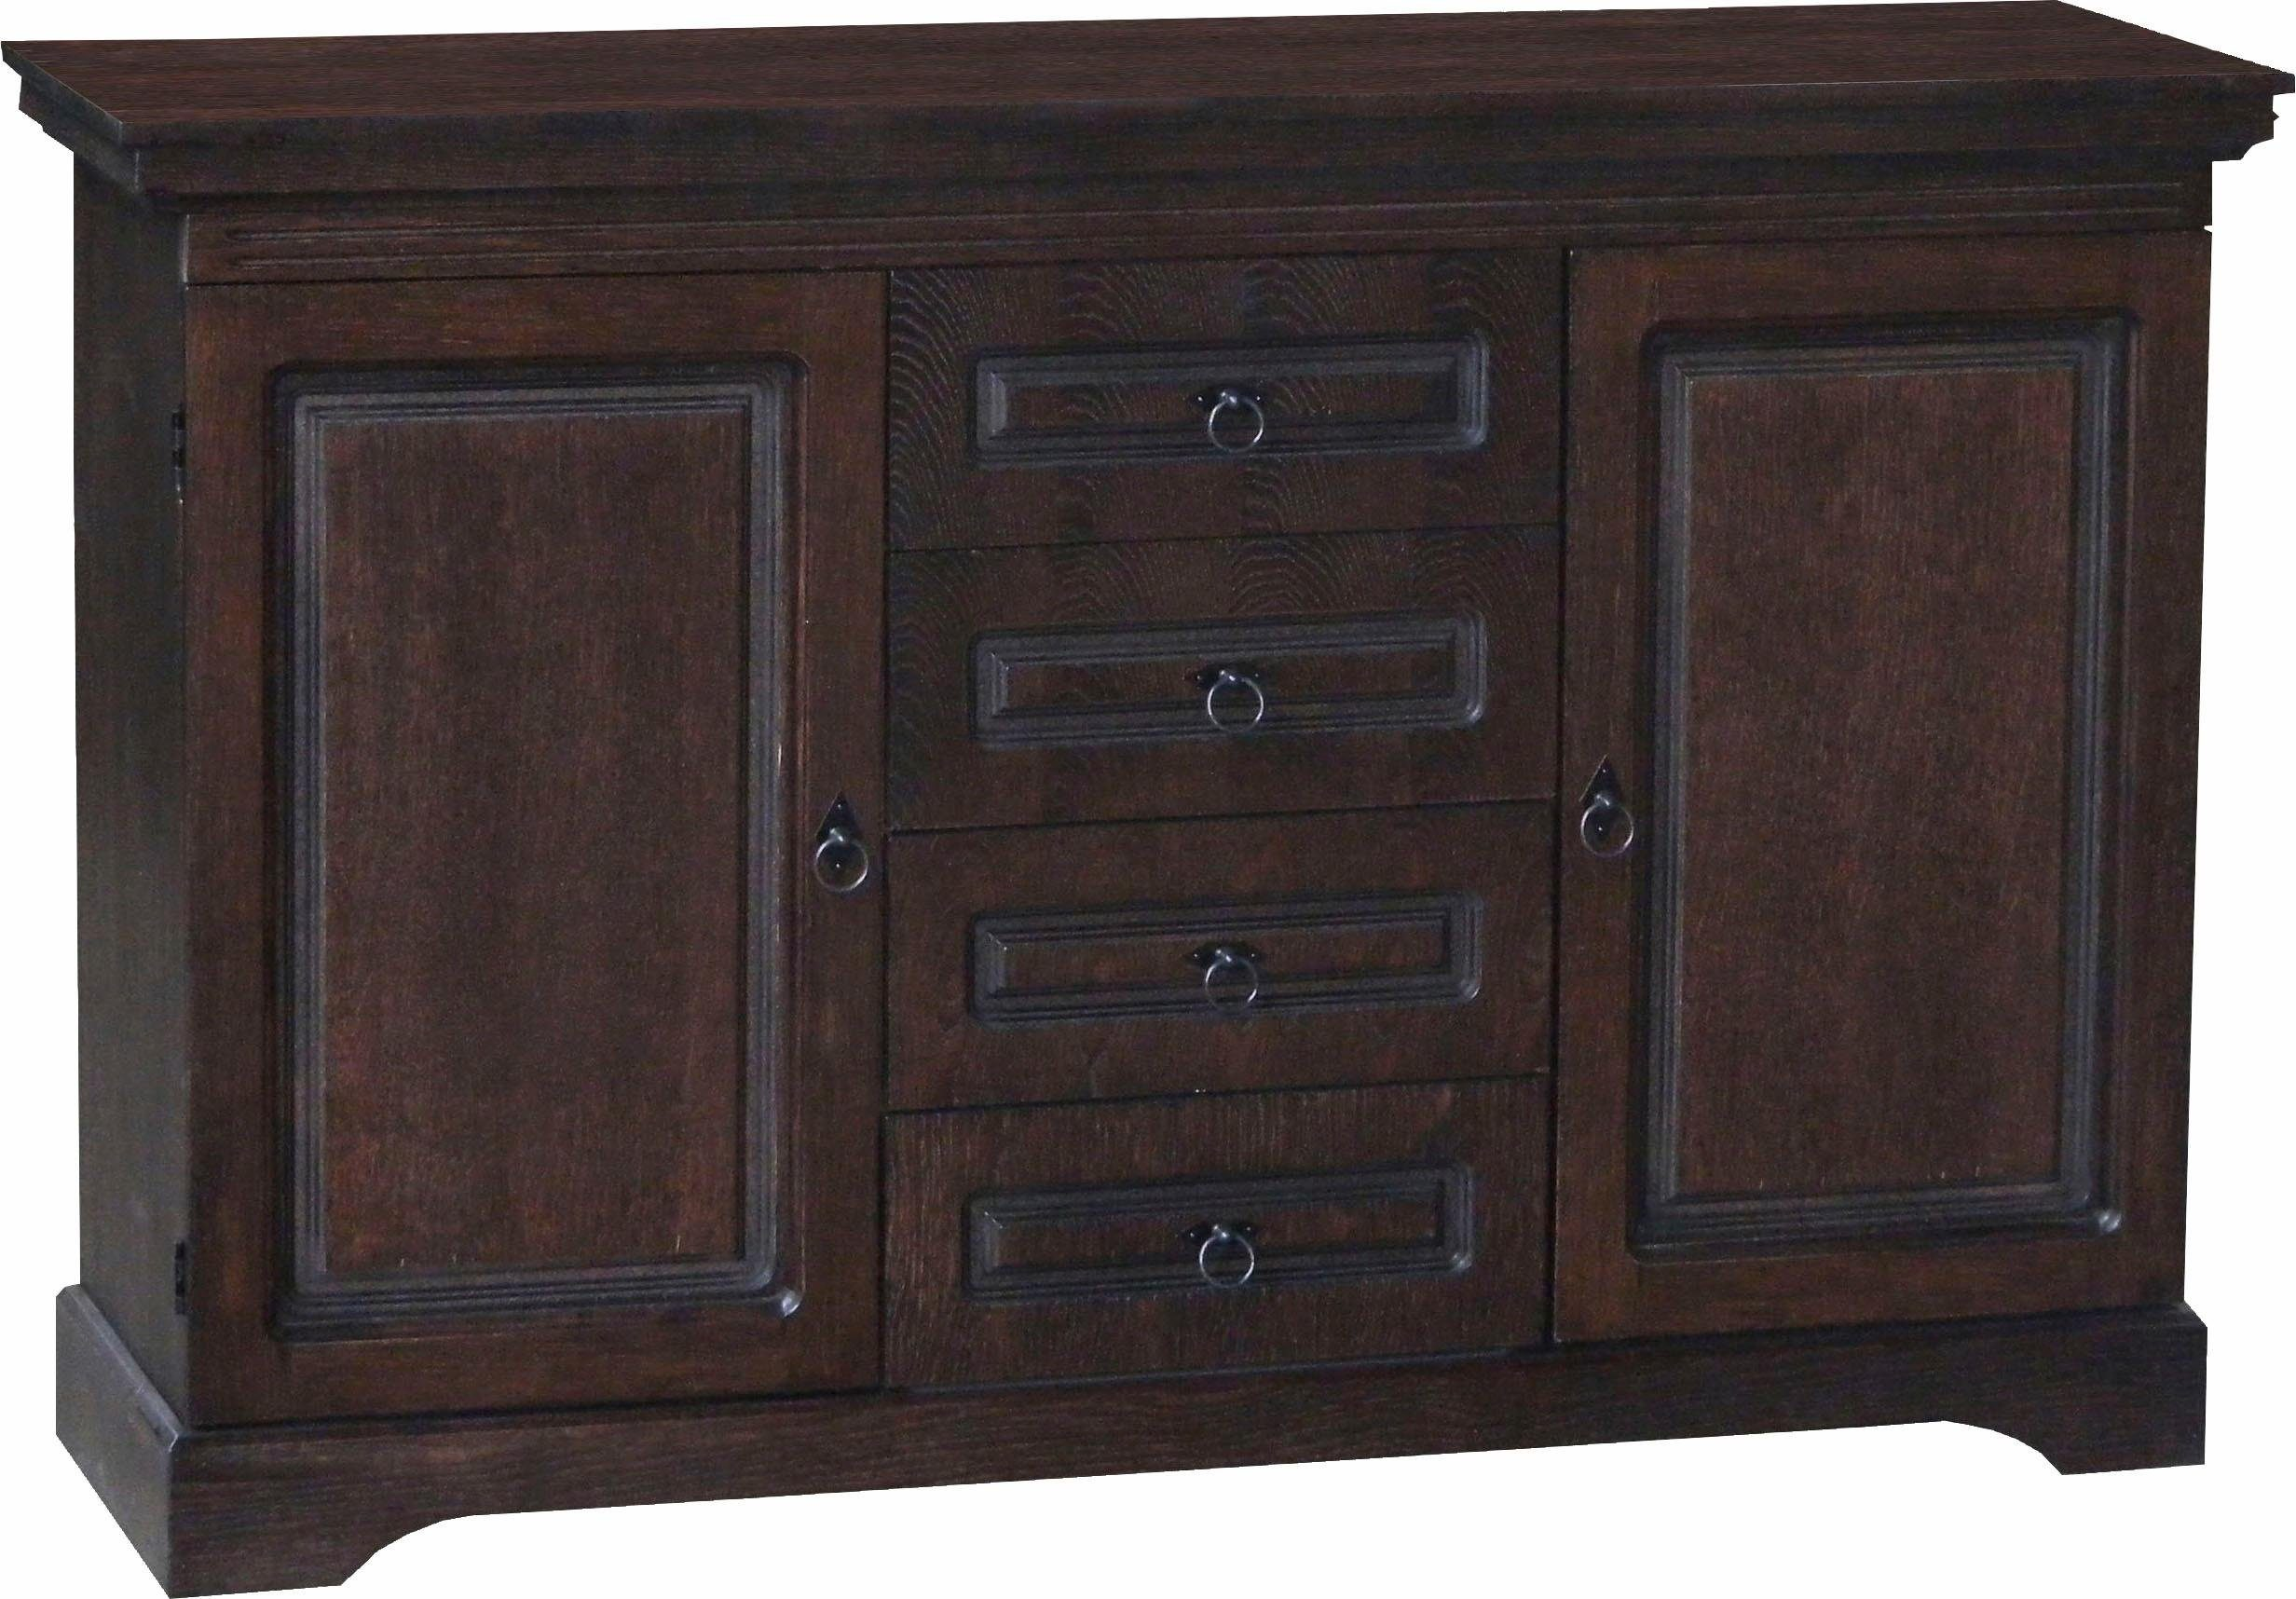 Otto Sideboard Home Affaire 37 Sparen Home Affaire Sideboard Porto Rico Nur 289